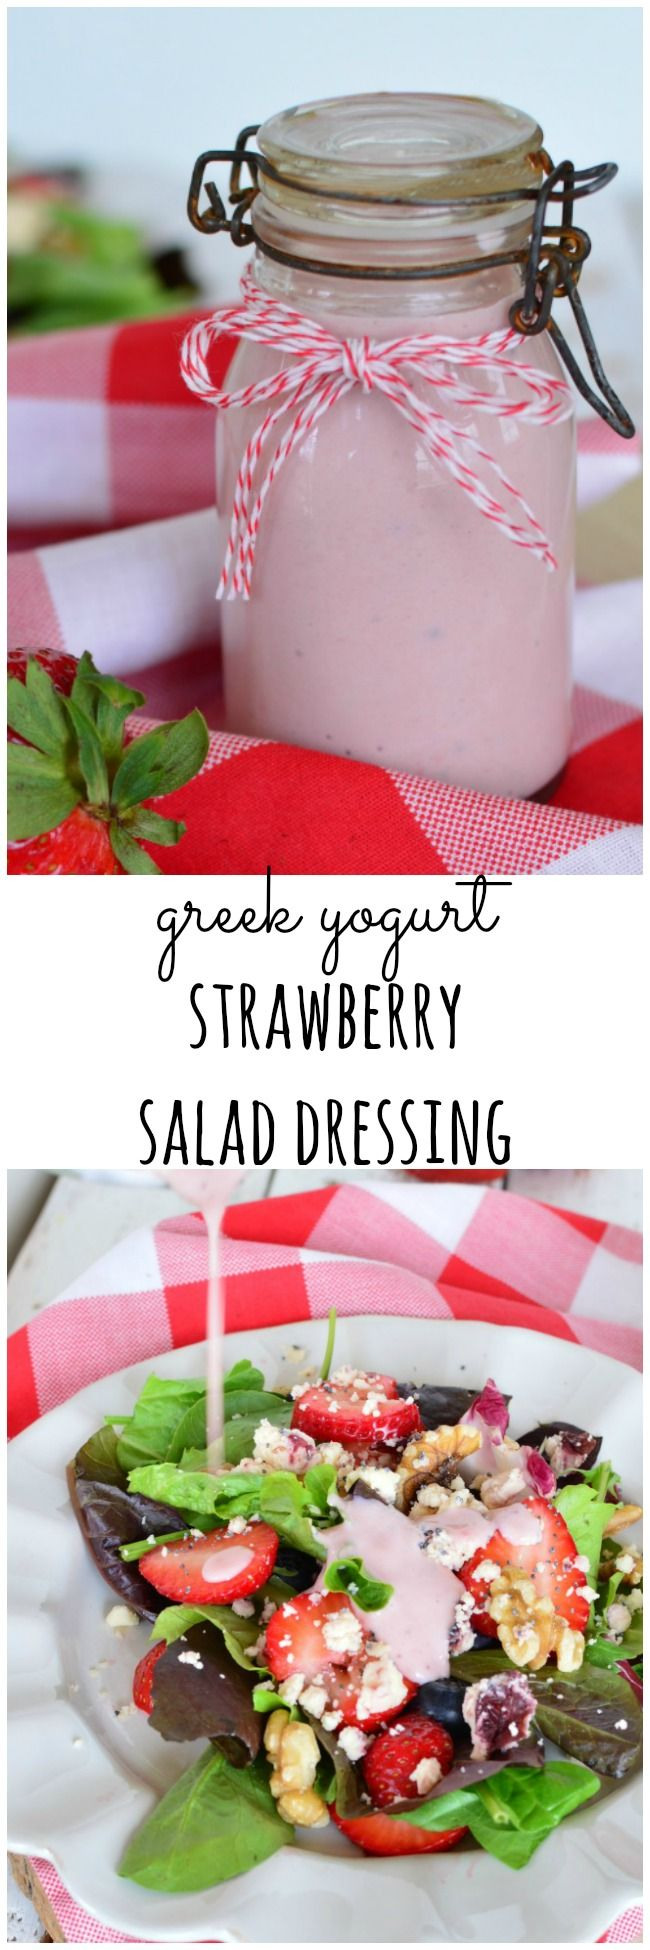 Greek Yogurt Stawberry Salad Dressing is a quick, easy, and healthy recipe. No more boring salads! www.littledairyonthepairie.com